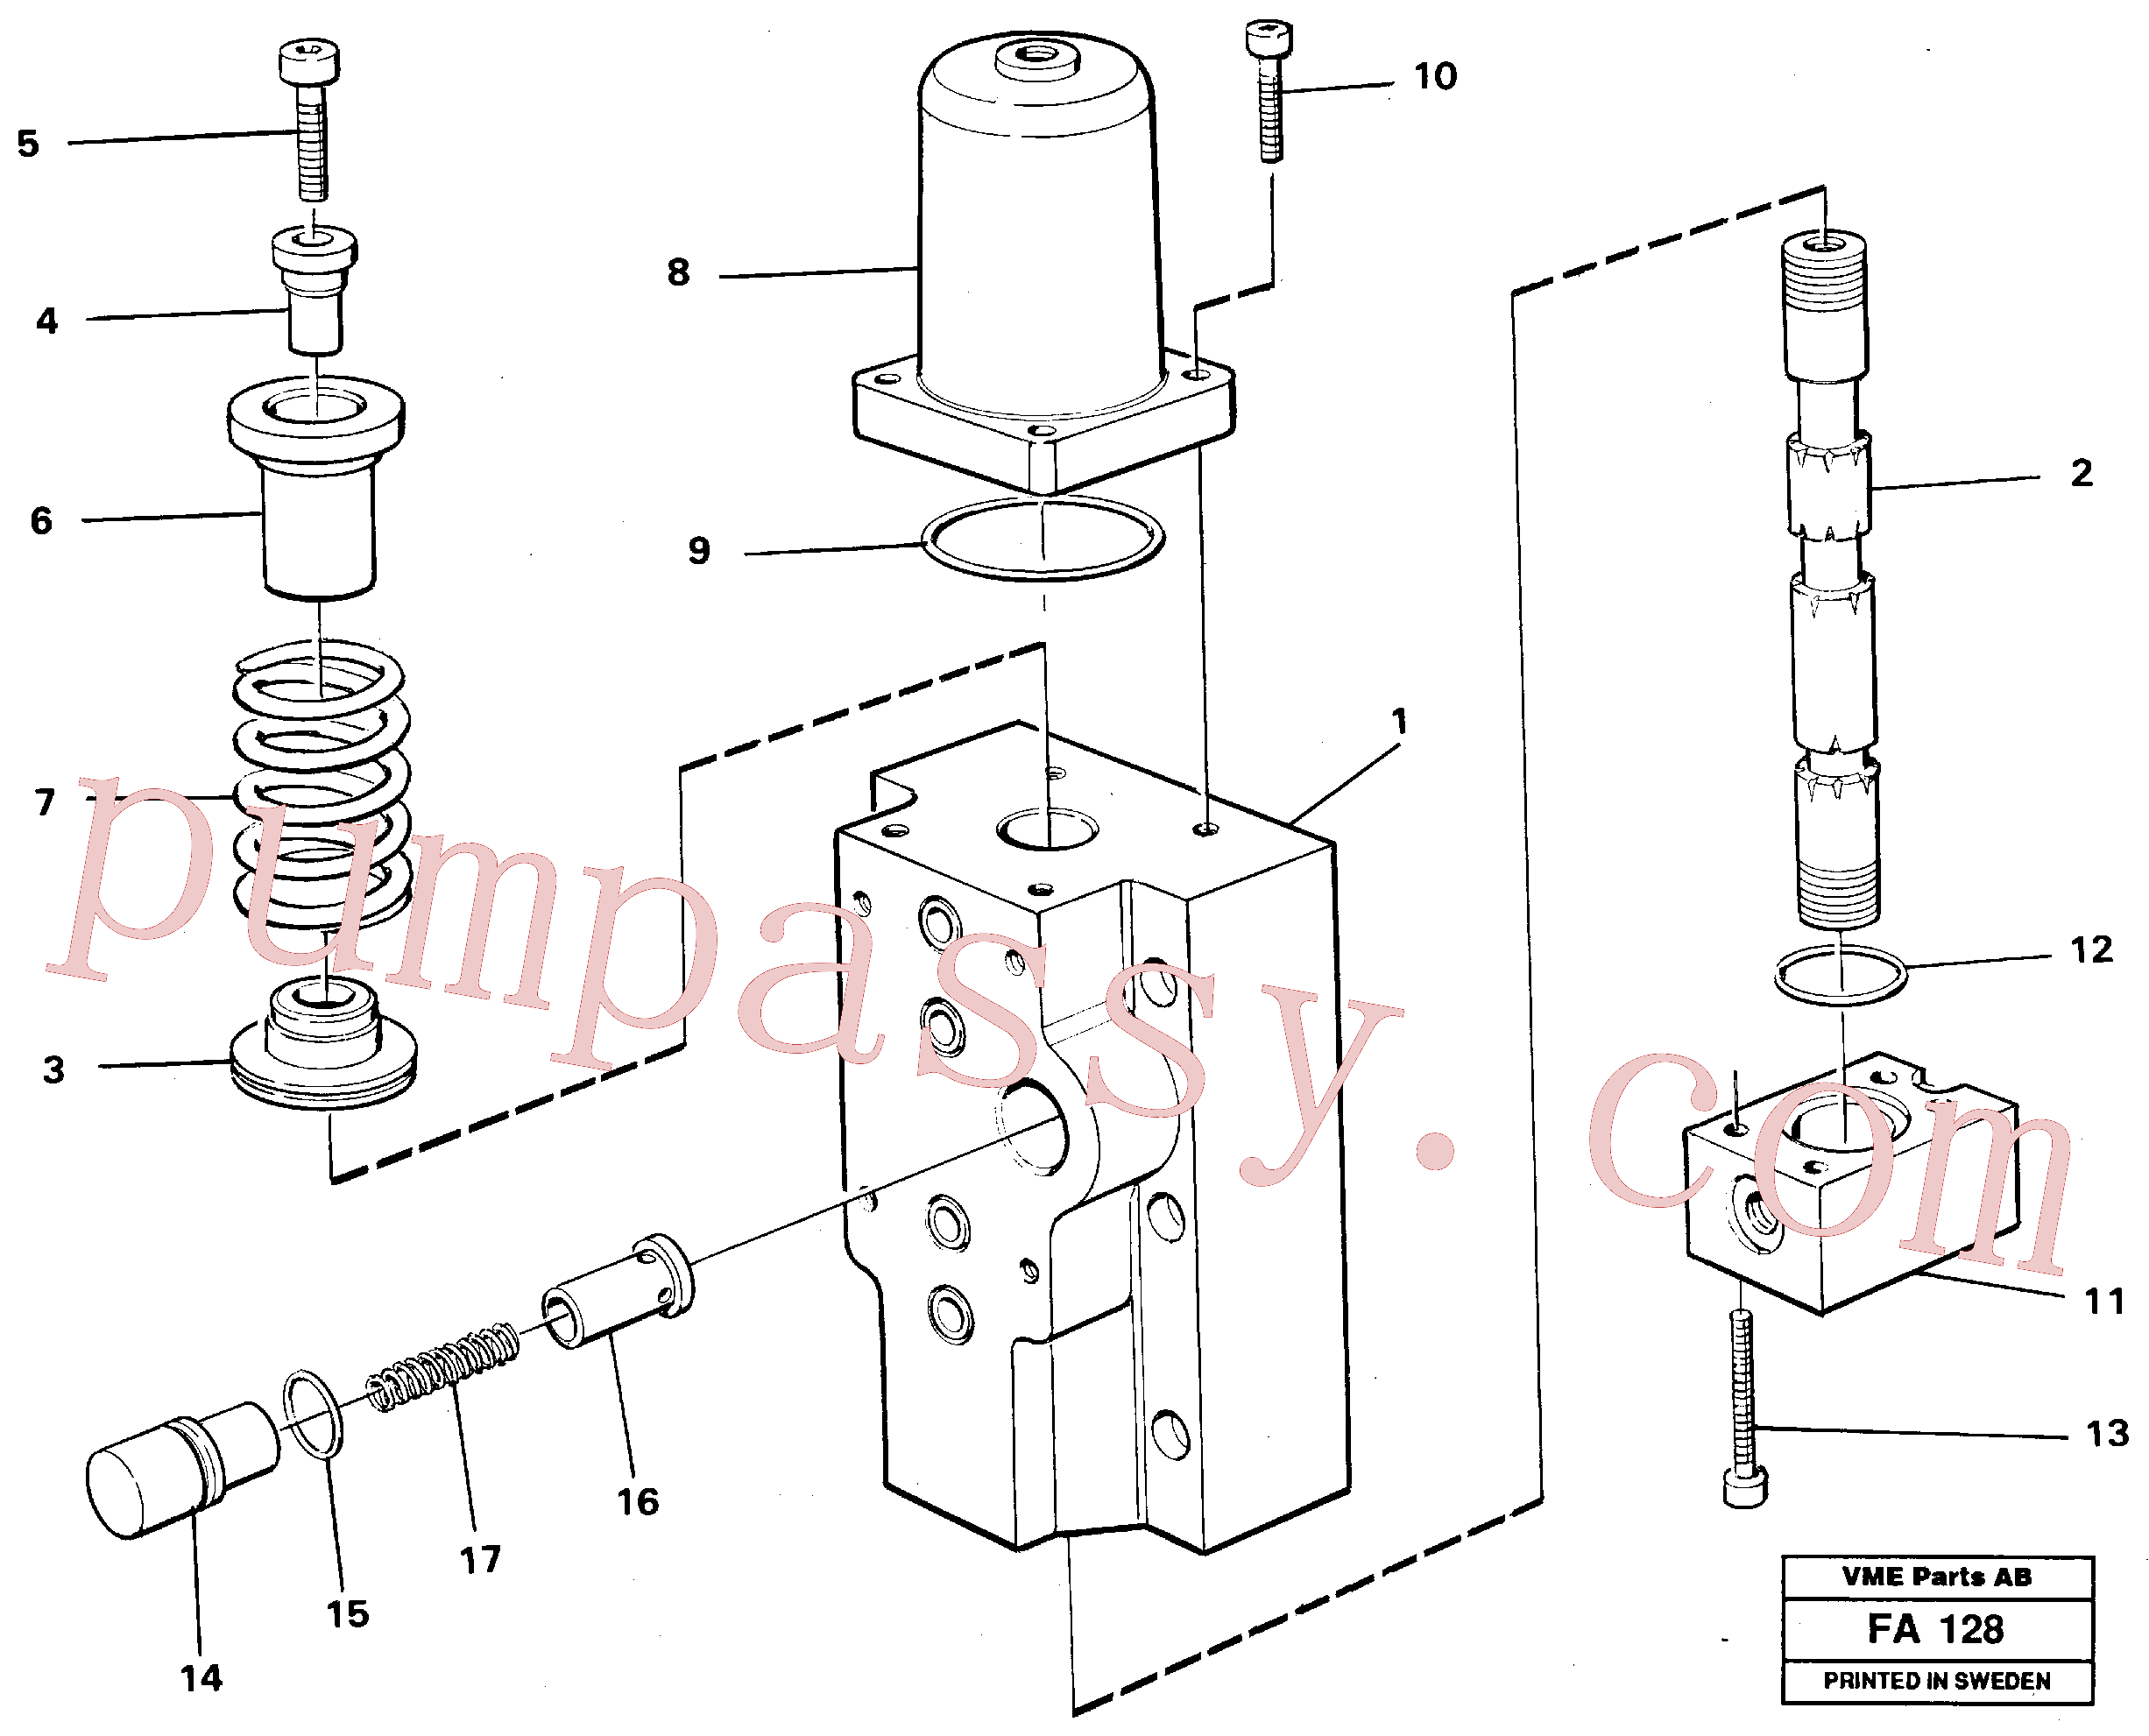 VOE14261818 for Volvo Four-way valve for hammer/shears, Four-way valves Primary(FA128 assembly)